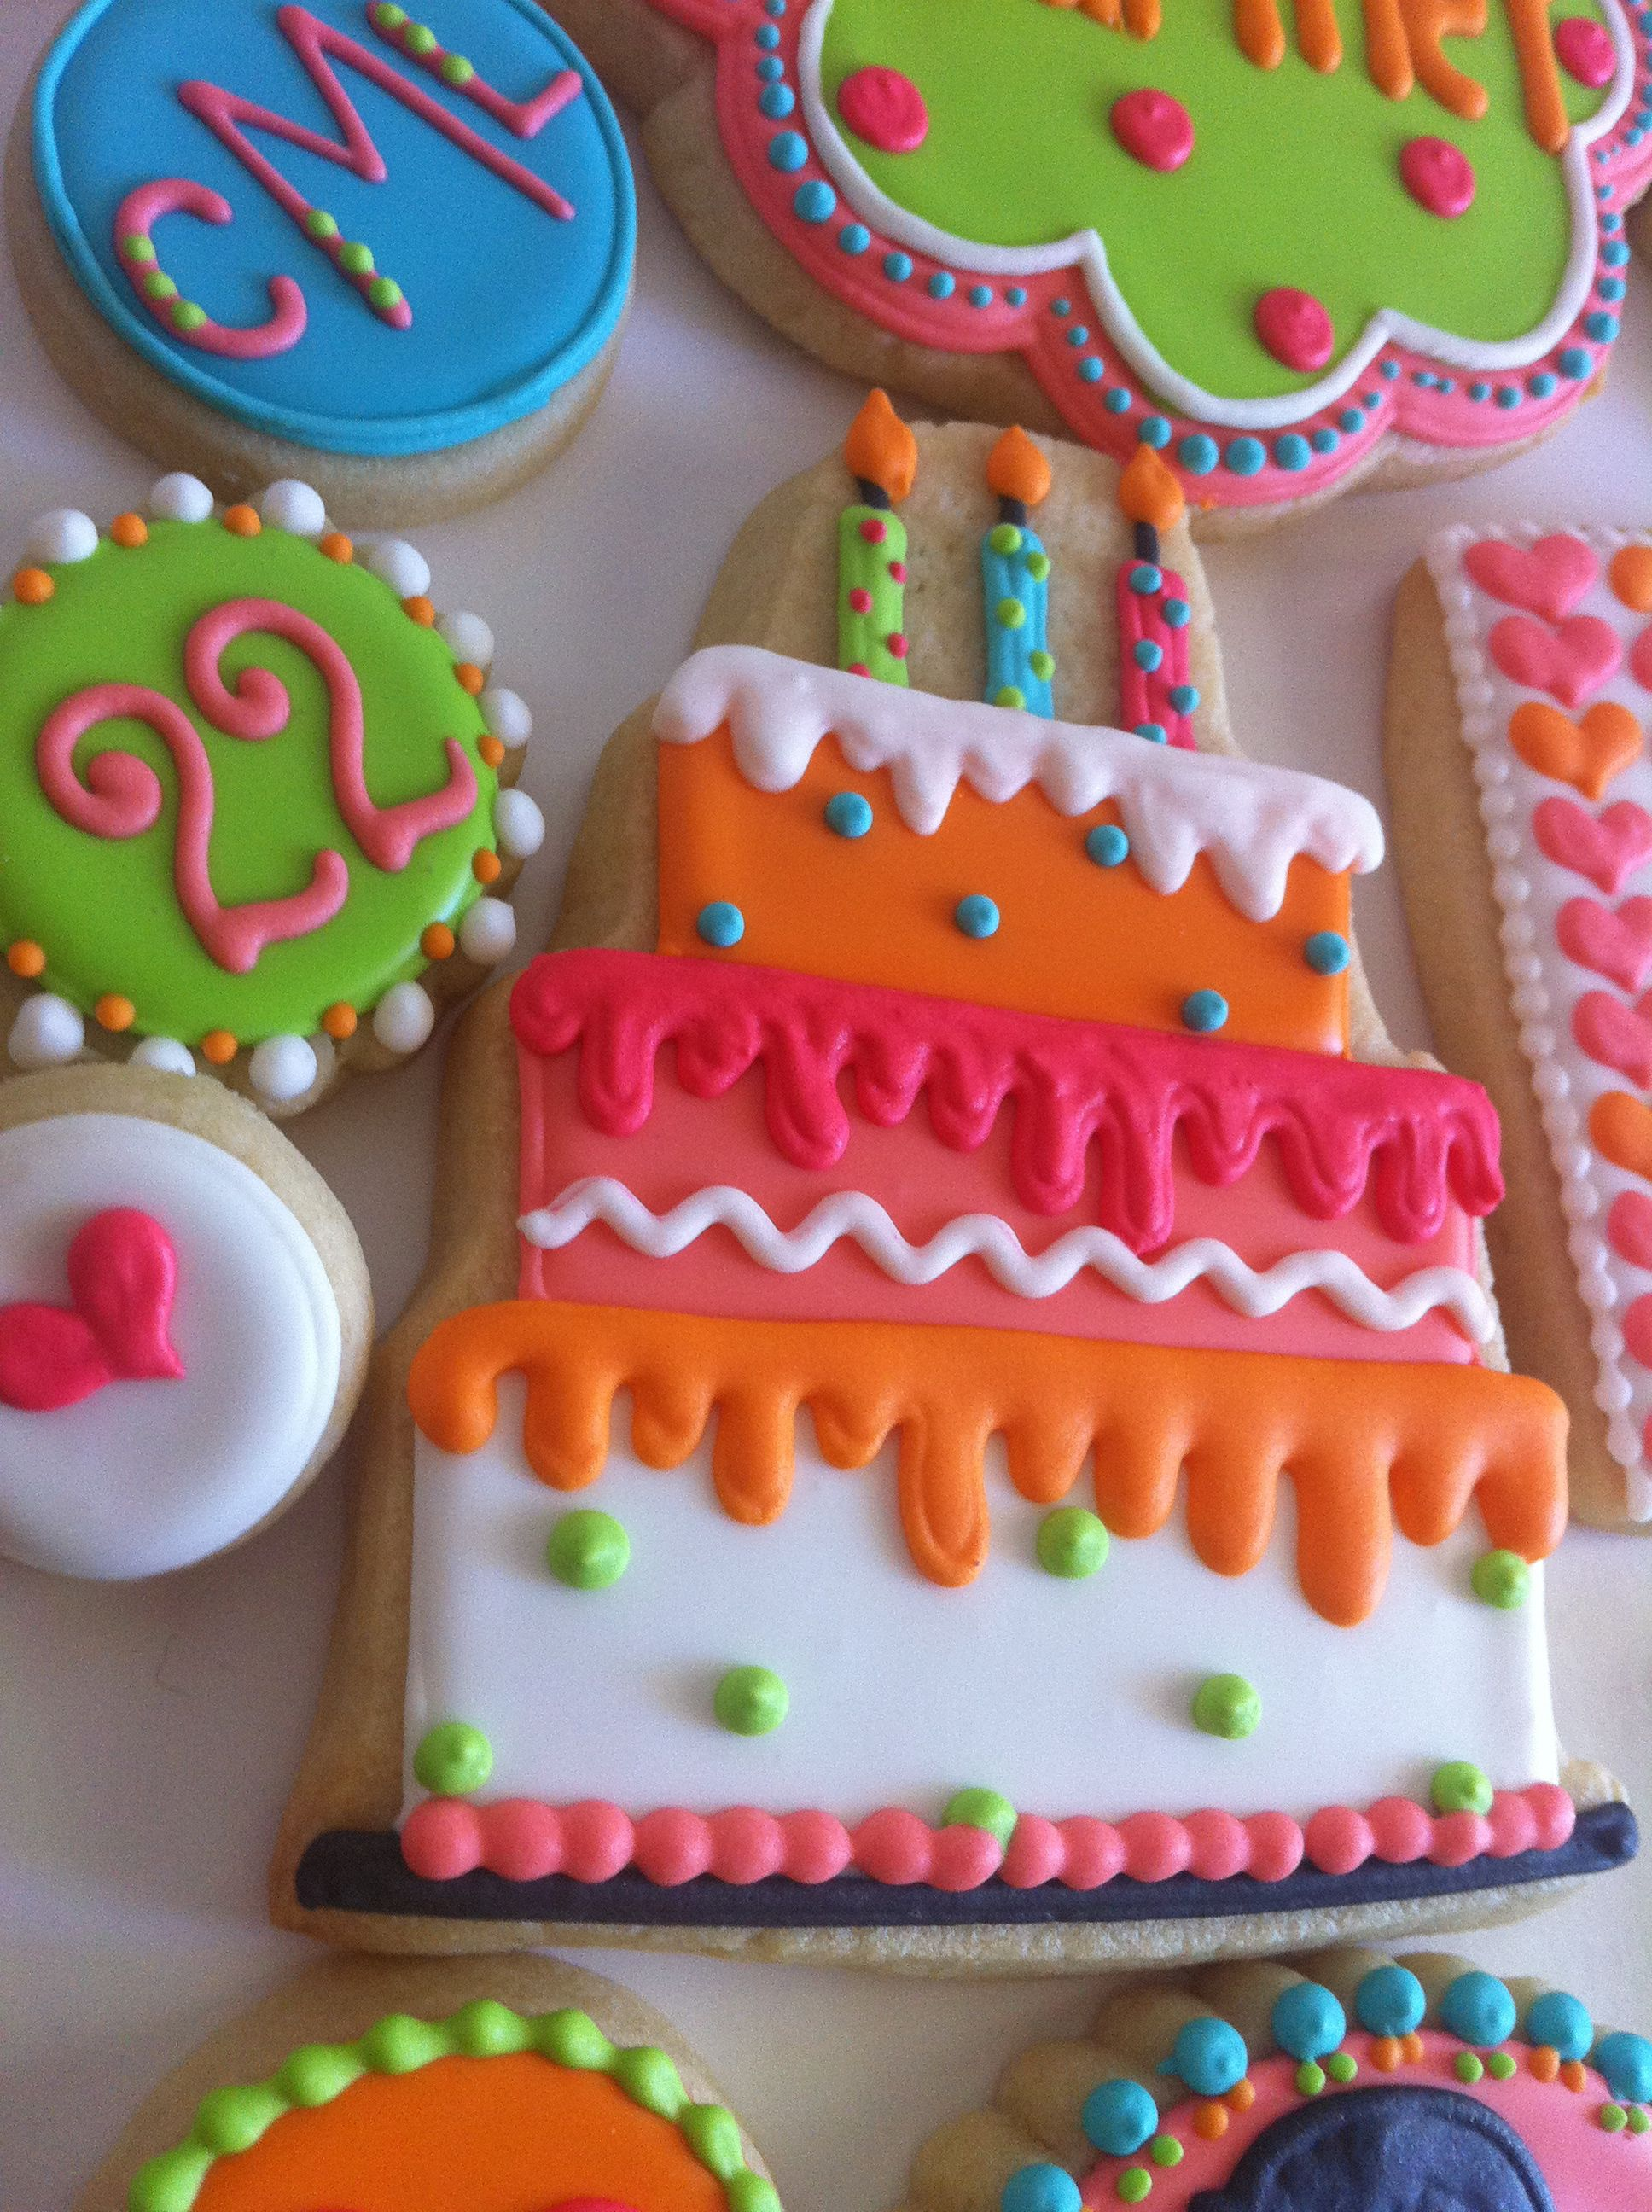 IMG 4114 1936x2592 Pixels Cookies Decorados Birthday Wedding Cake